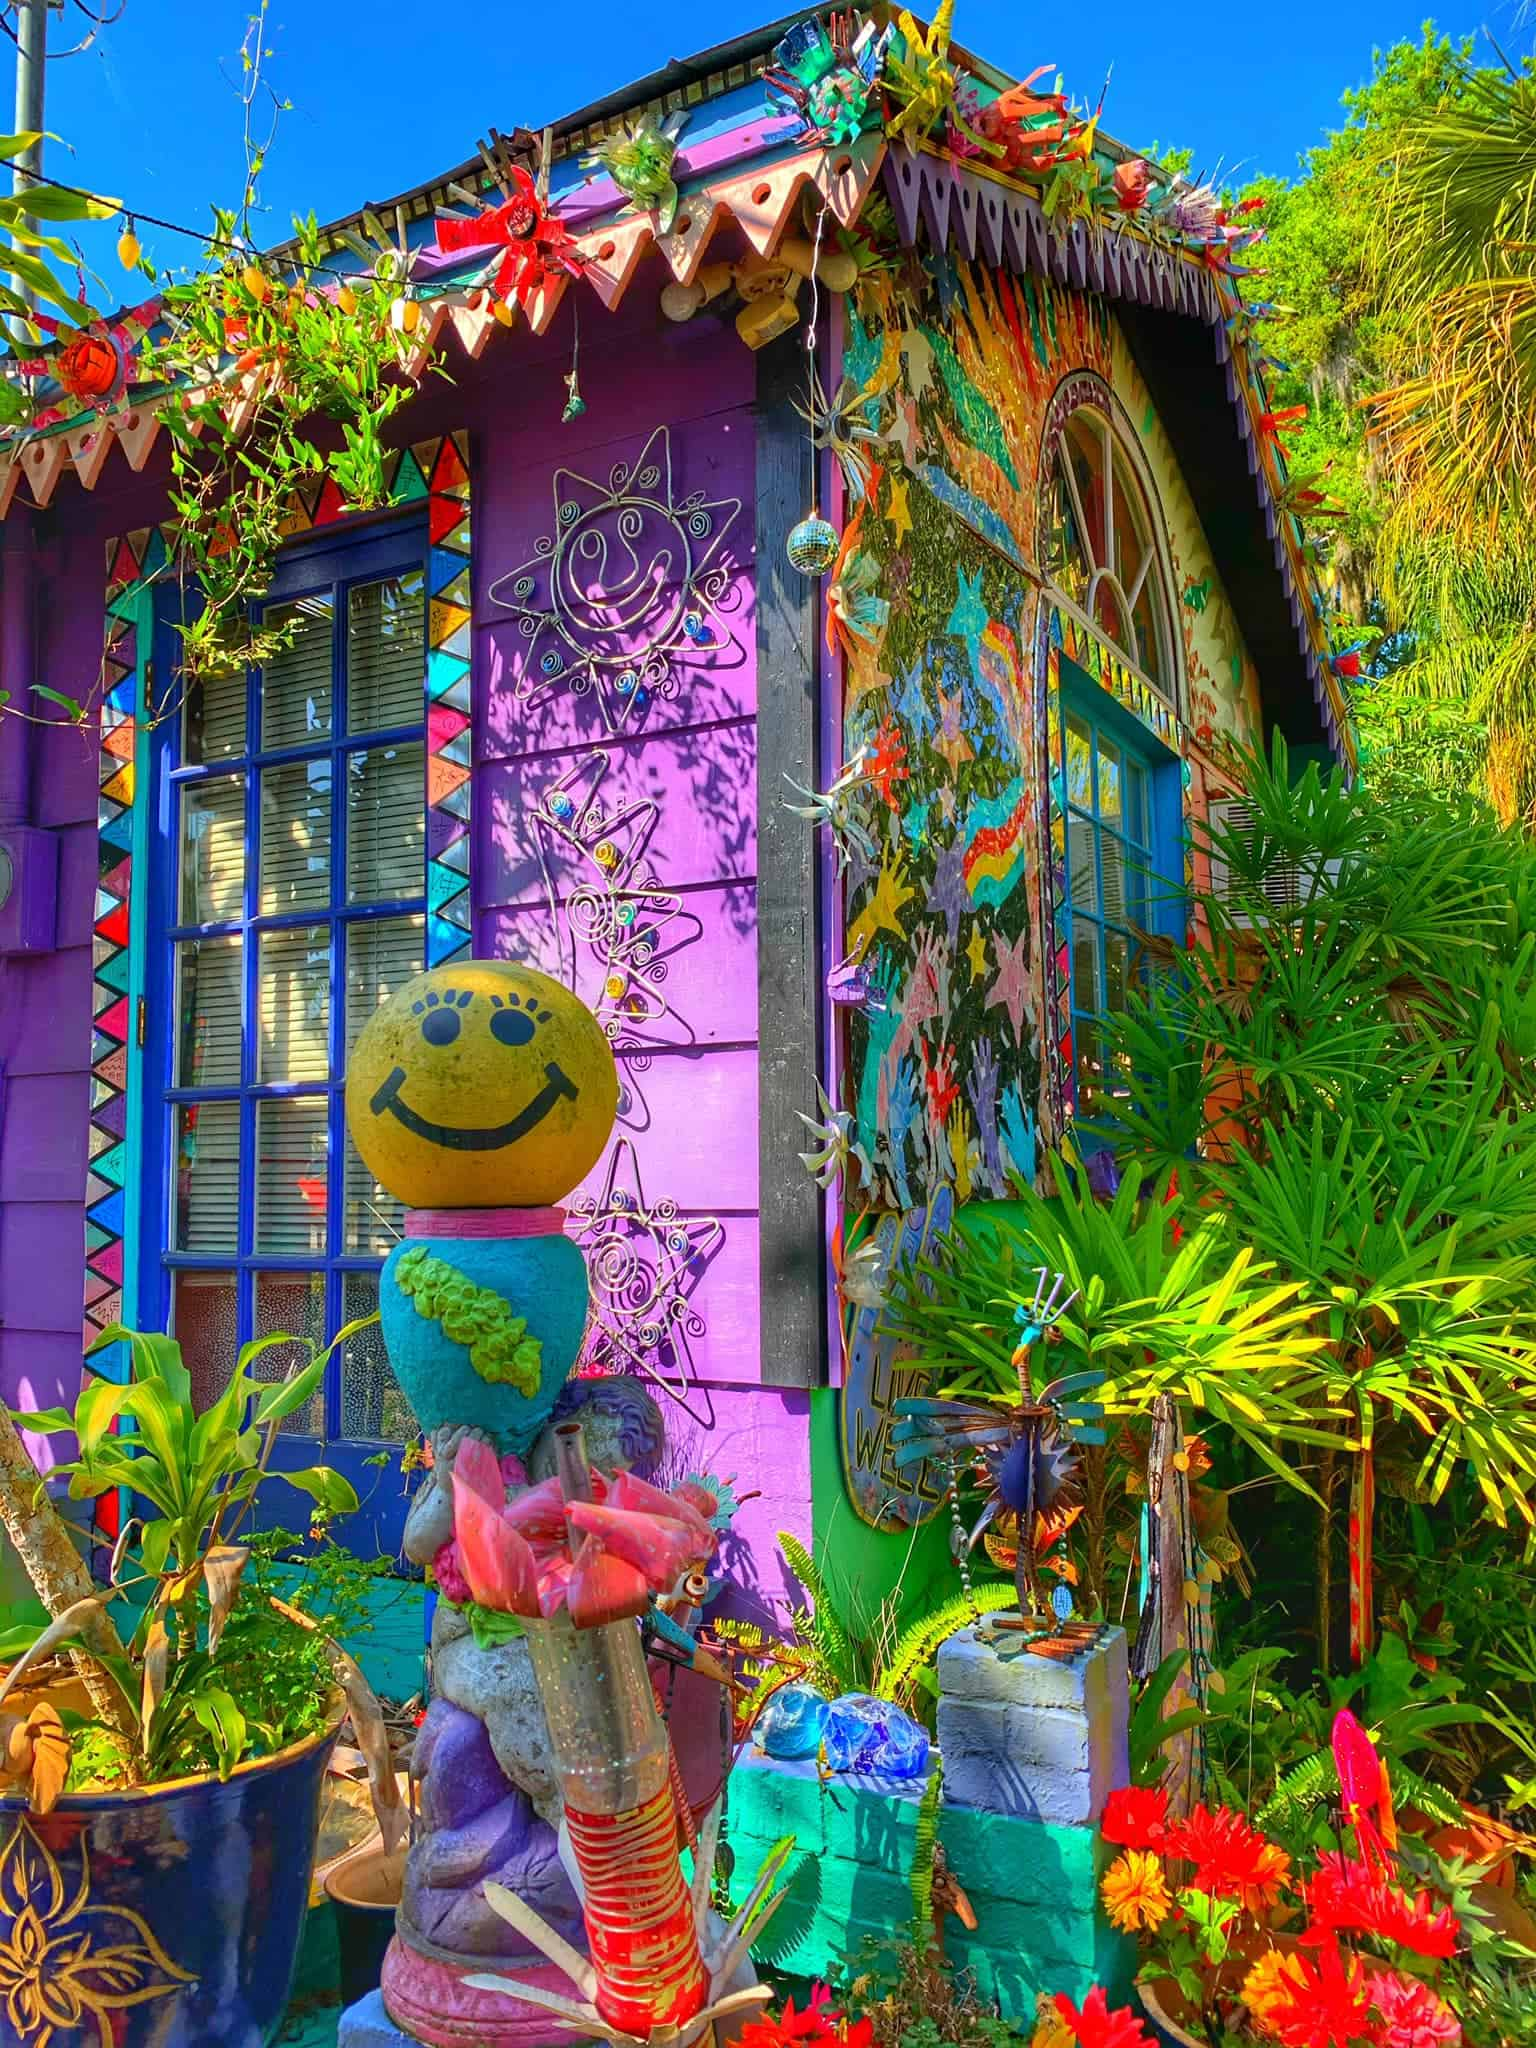 Corner of Whimzeyland house, with smiley face bowling balls, brightly colored sculptures and pieces adorn the home as well as the surrounding space outside